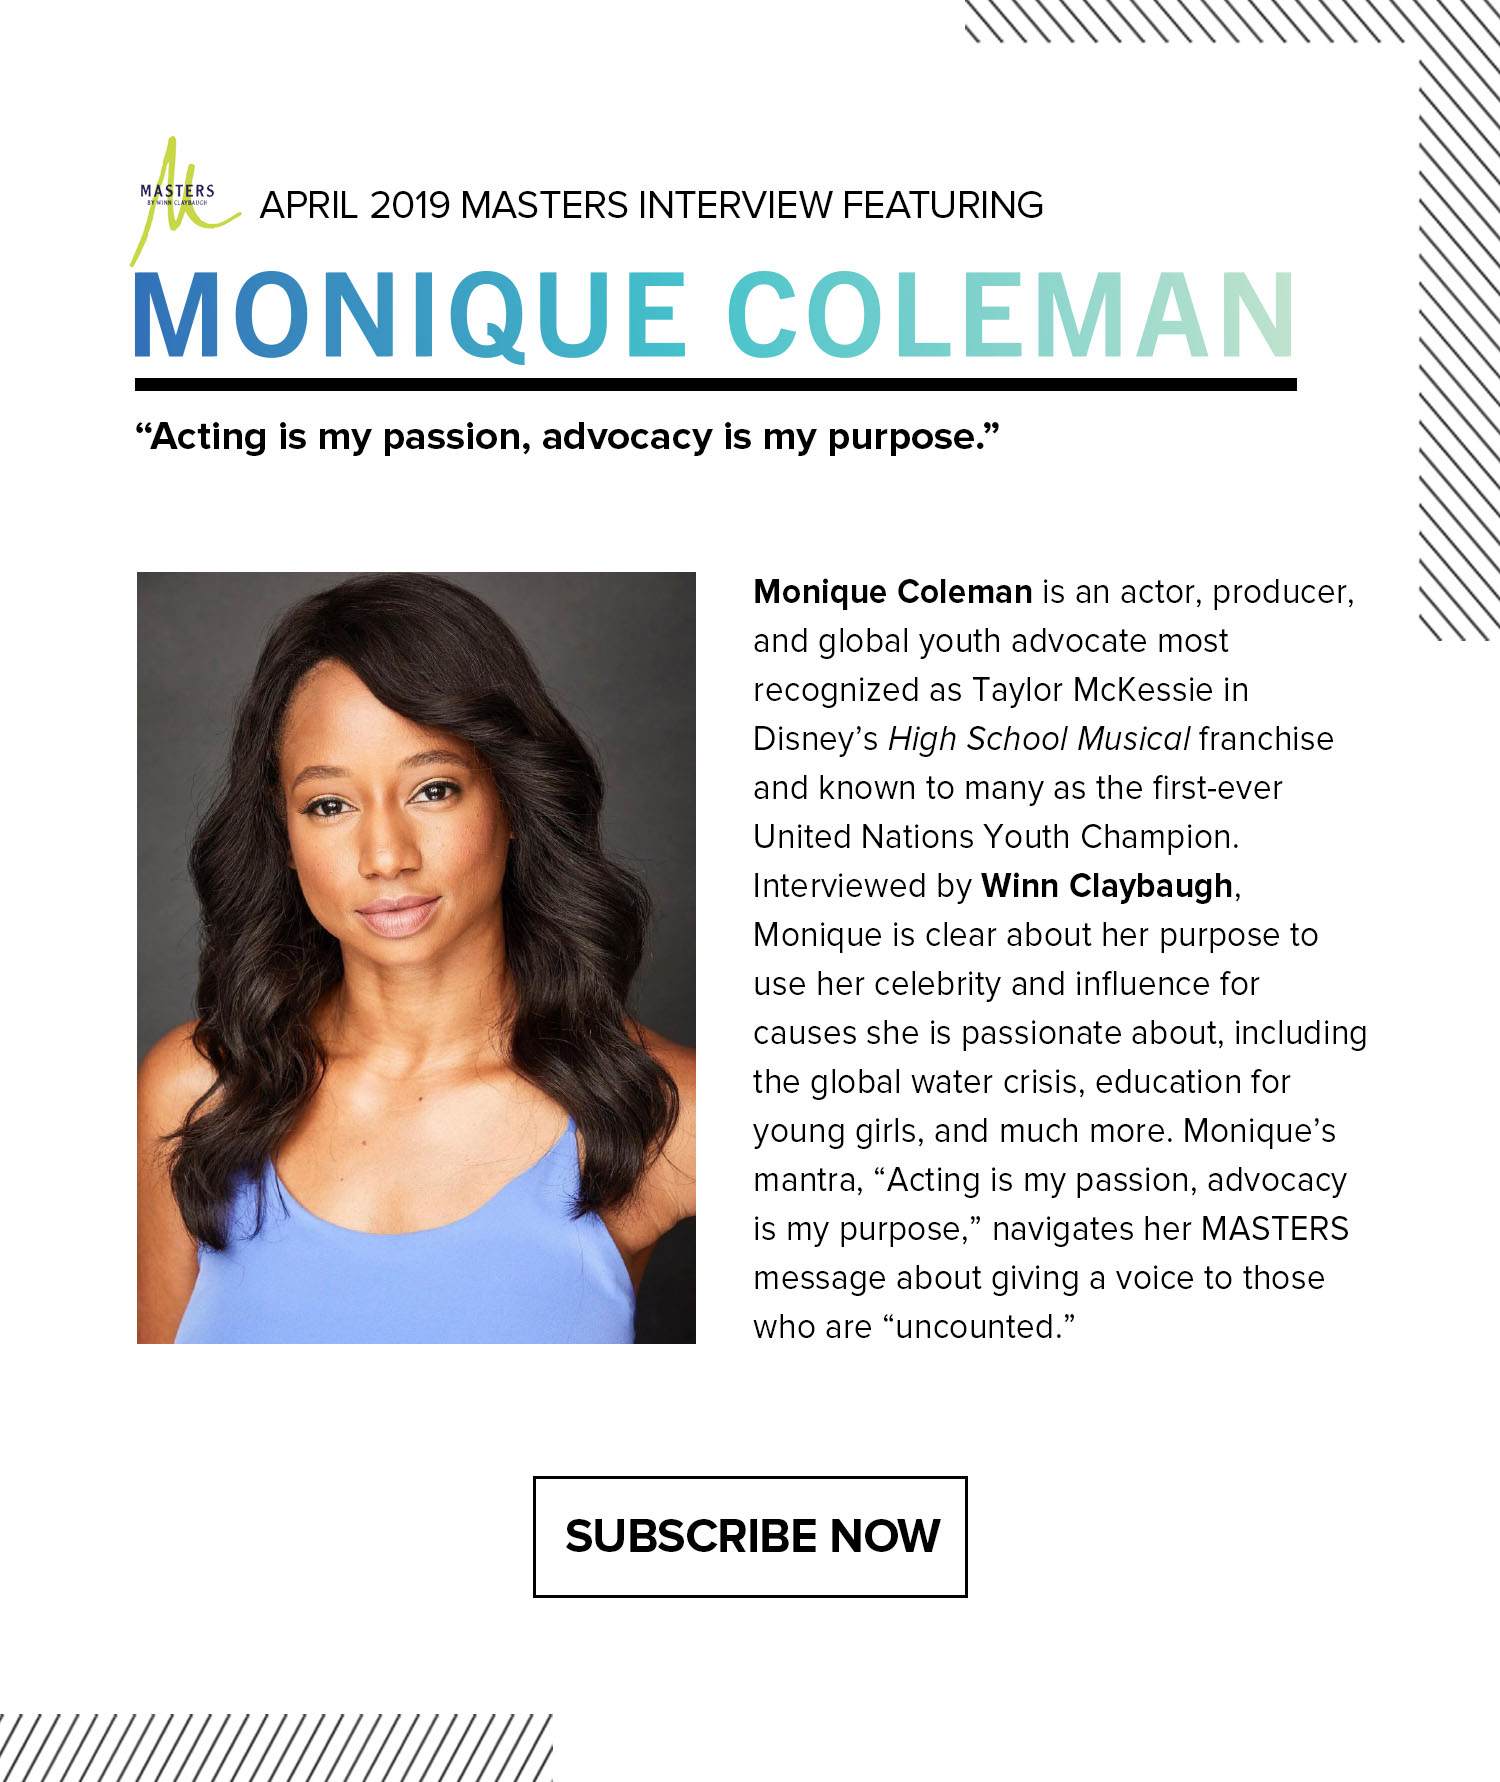 MASTERS Monique Coleman SUBSCRIBE_419.jpg